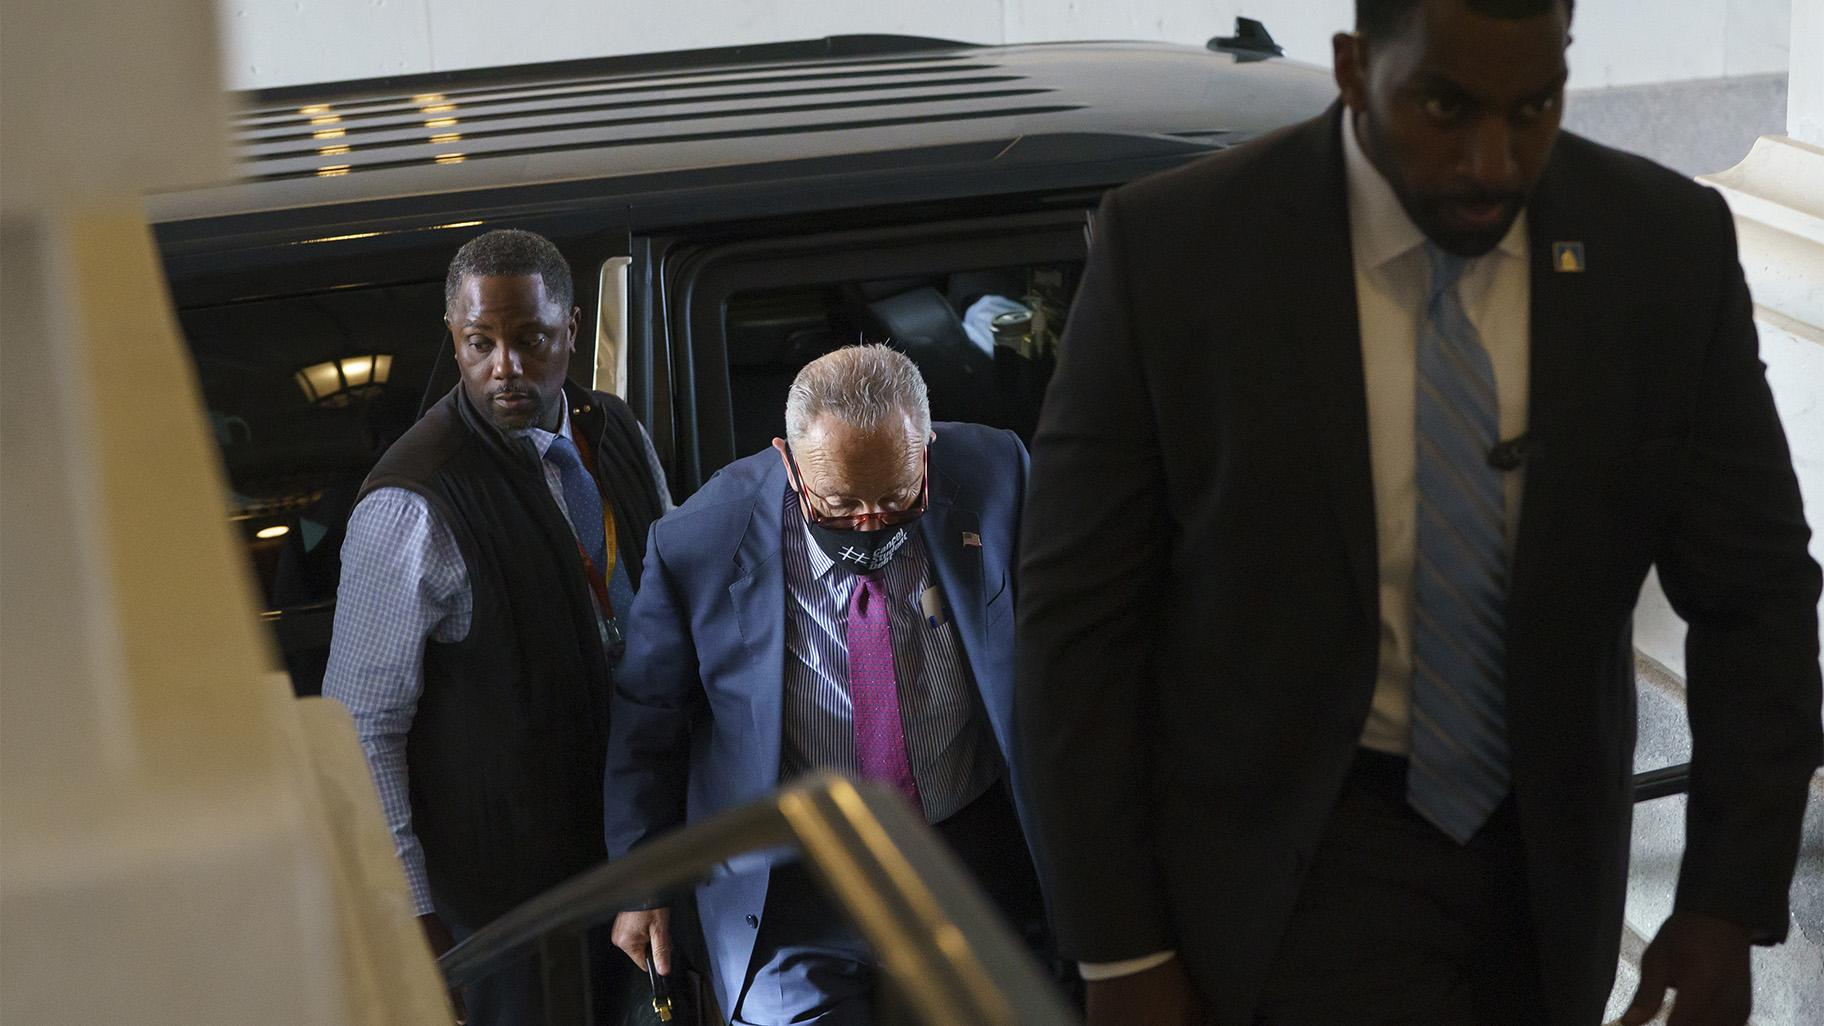 Senate Majority Leader Chuck Schumer, D-N.Y., arrives as the Senate convenes for a rare weekend session on the  trillion bipartisan infrastructure bill, at the Capitol in Washington, Saturday, Aug. 7, 2021. (AP Photo / J. Scott Applewhite)